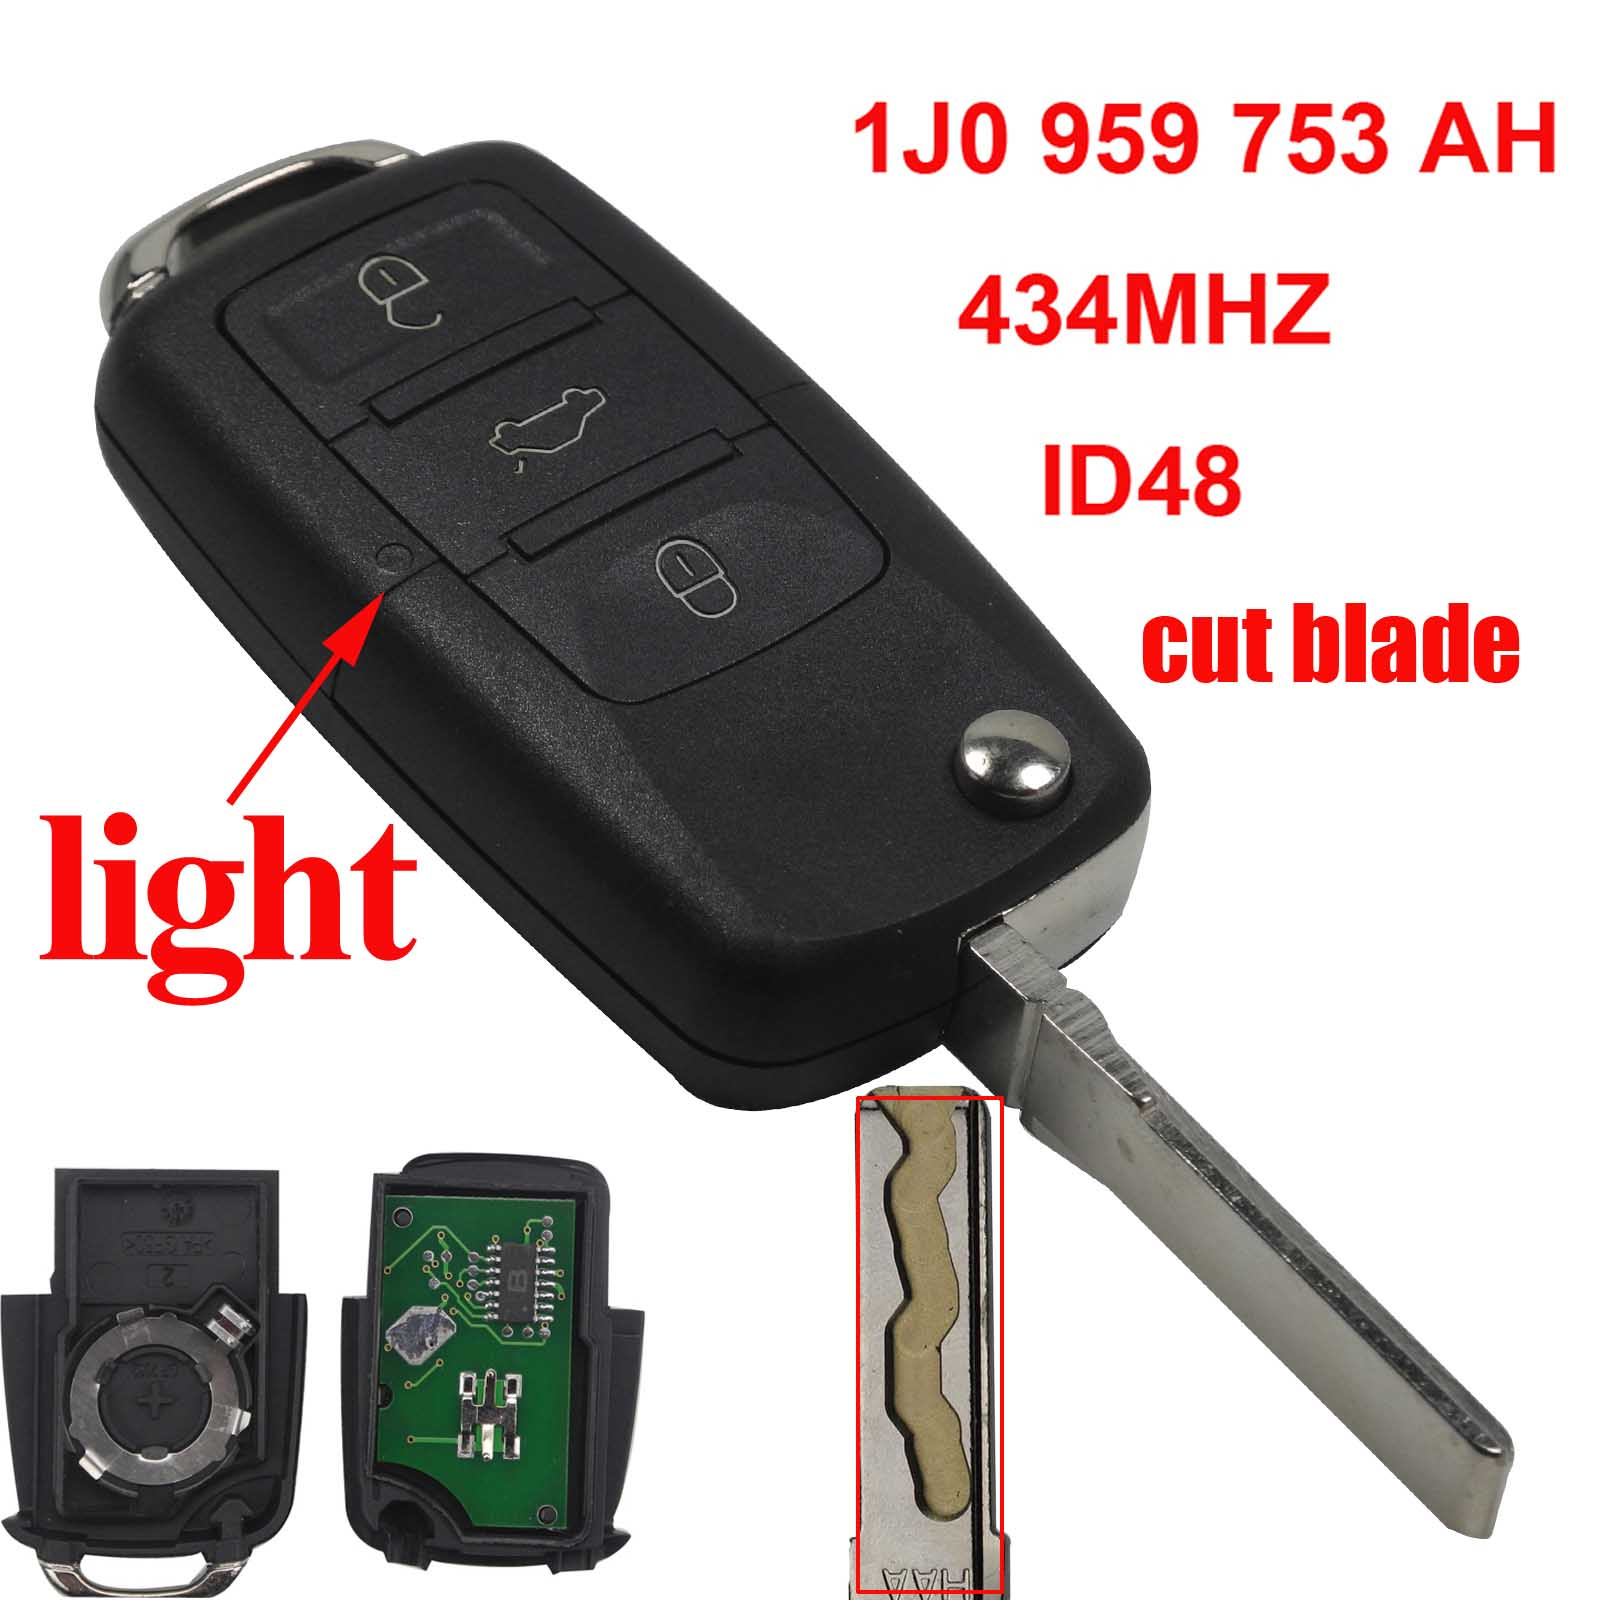 jingyuqin cut blade ASK 1J0959753AH 434MHz With ID48 Chip 3B Remote Key Case Fob For VW PASSAT Beetle Polo /Skoda With logojingyuqin cut blade ASK 1J0959753AH 434MHz With ID48 Chip 3B Remote Key Case Fob For VW PASSAT Beetle Polo /Skoda With logo